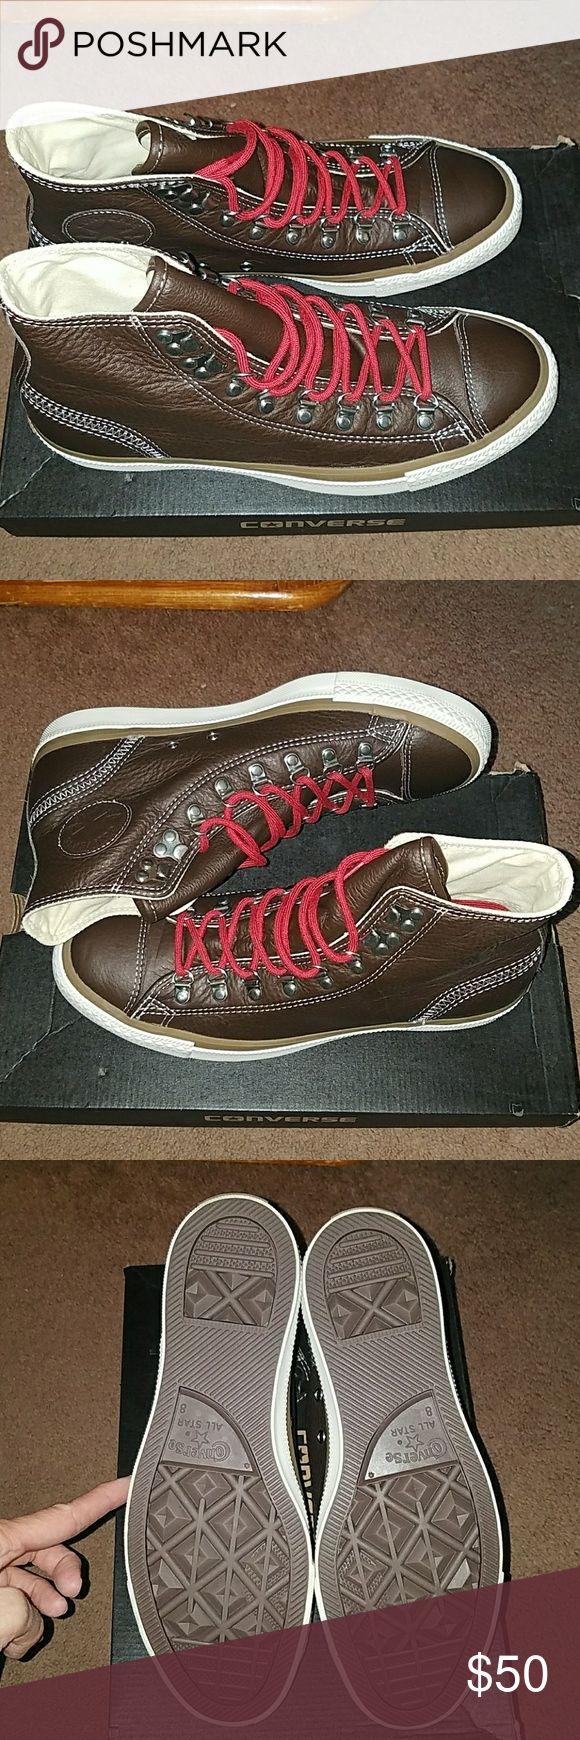 Leather converse high tops New in box.  Converse CT hiker high top.  Chocolate brown.  Mens size 8, womens size 10.   Super cool shoes...never worn because they are too big for me :( Bought them hoping a thick pair of socks would do the trick, but that didn't work.   They come from my non smoking, pet friendly home. Stored in their original box in the closet away from critters.   Don't like my price?  Make me an offer.  I will consider REASONABLE offers. Converse Shoes Sneakers